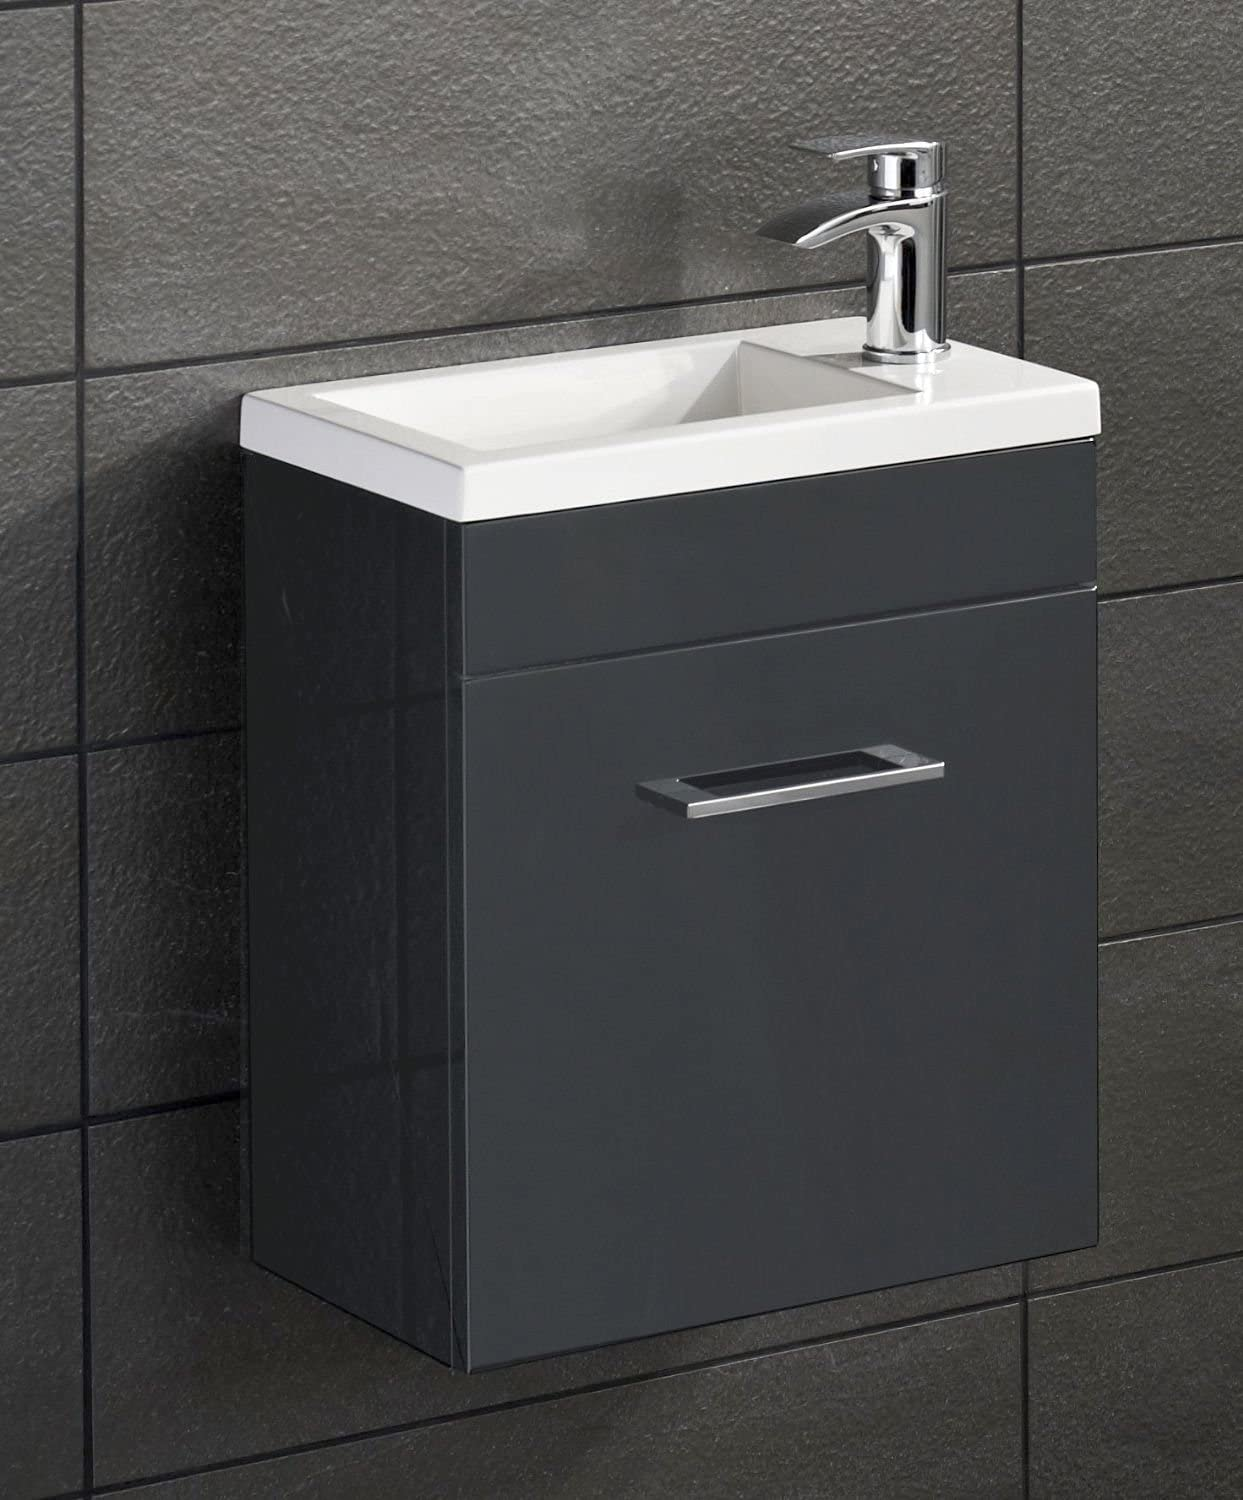 E Plumb Anthracite Square Basin Wall Hung Bathroom Furniture Cloakroom Compact Vanity Unit 400 X 250 Amazon Co Uk Kitchen Home